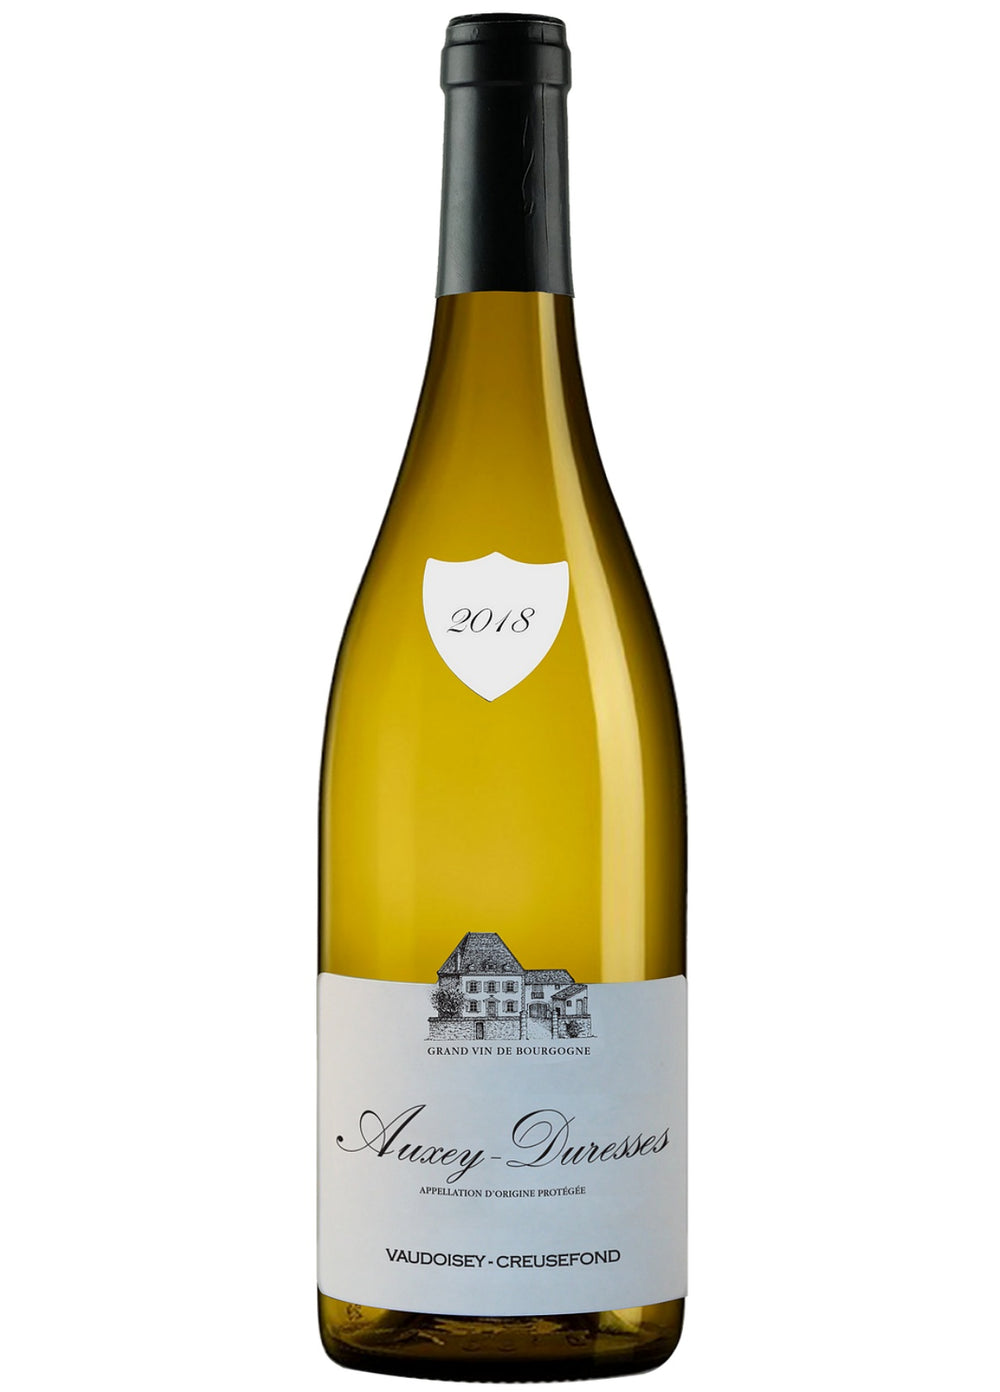 Domaine Vaudoisey-Creusefond - Auxey Duresses Blanc 2018